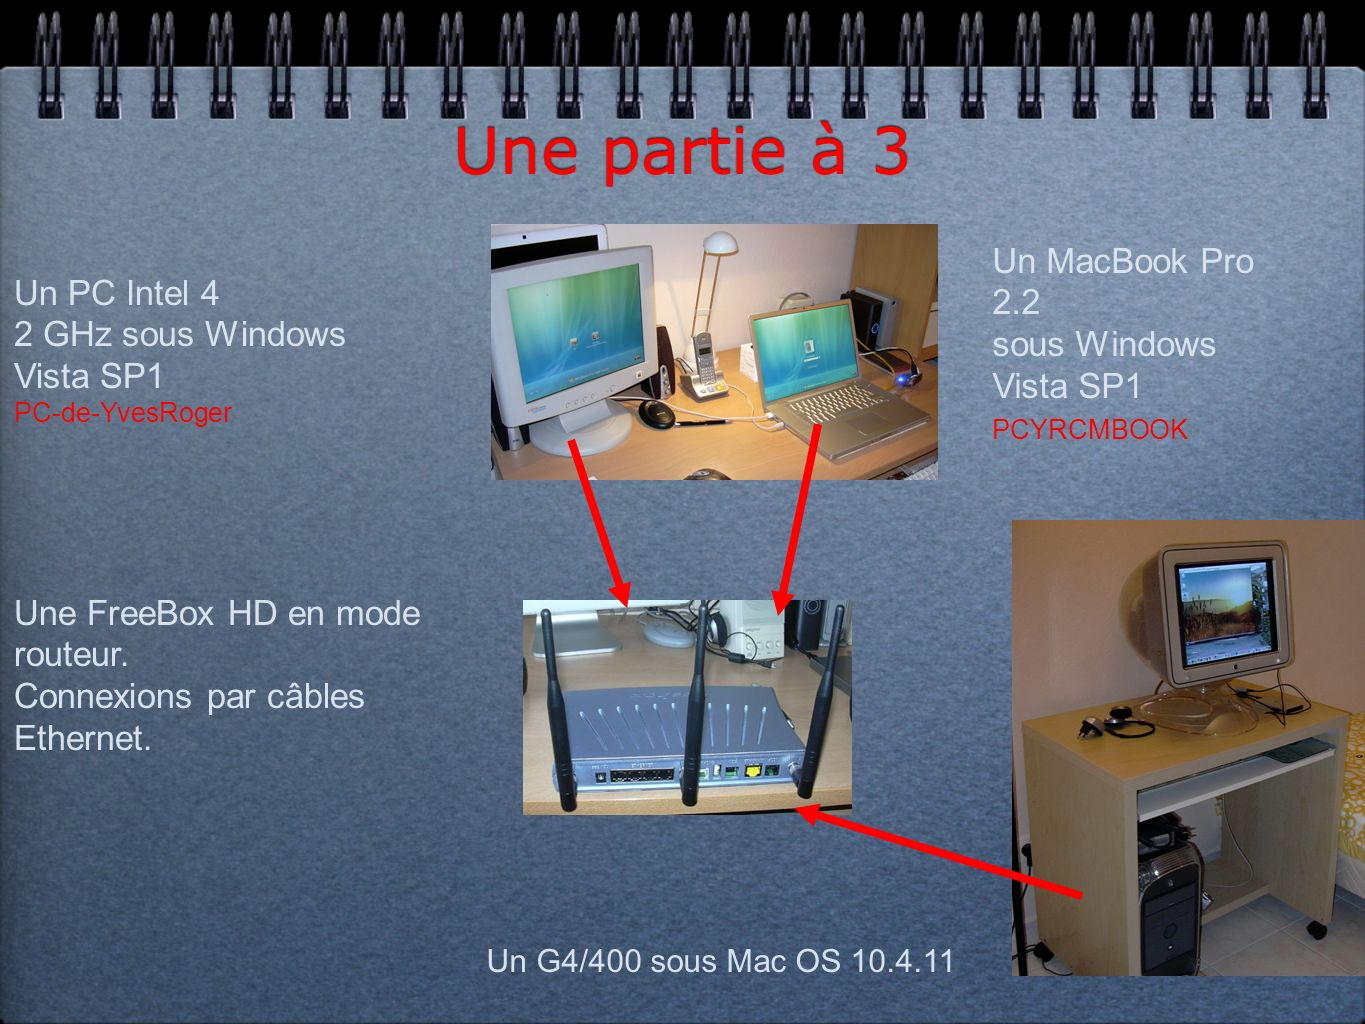 Une partie à 3 Un MacBook Pro 2.2 sous Windows Vista SP1 PCYRCMBOOK Une FreeBox HD en mode routeur.